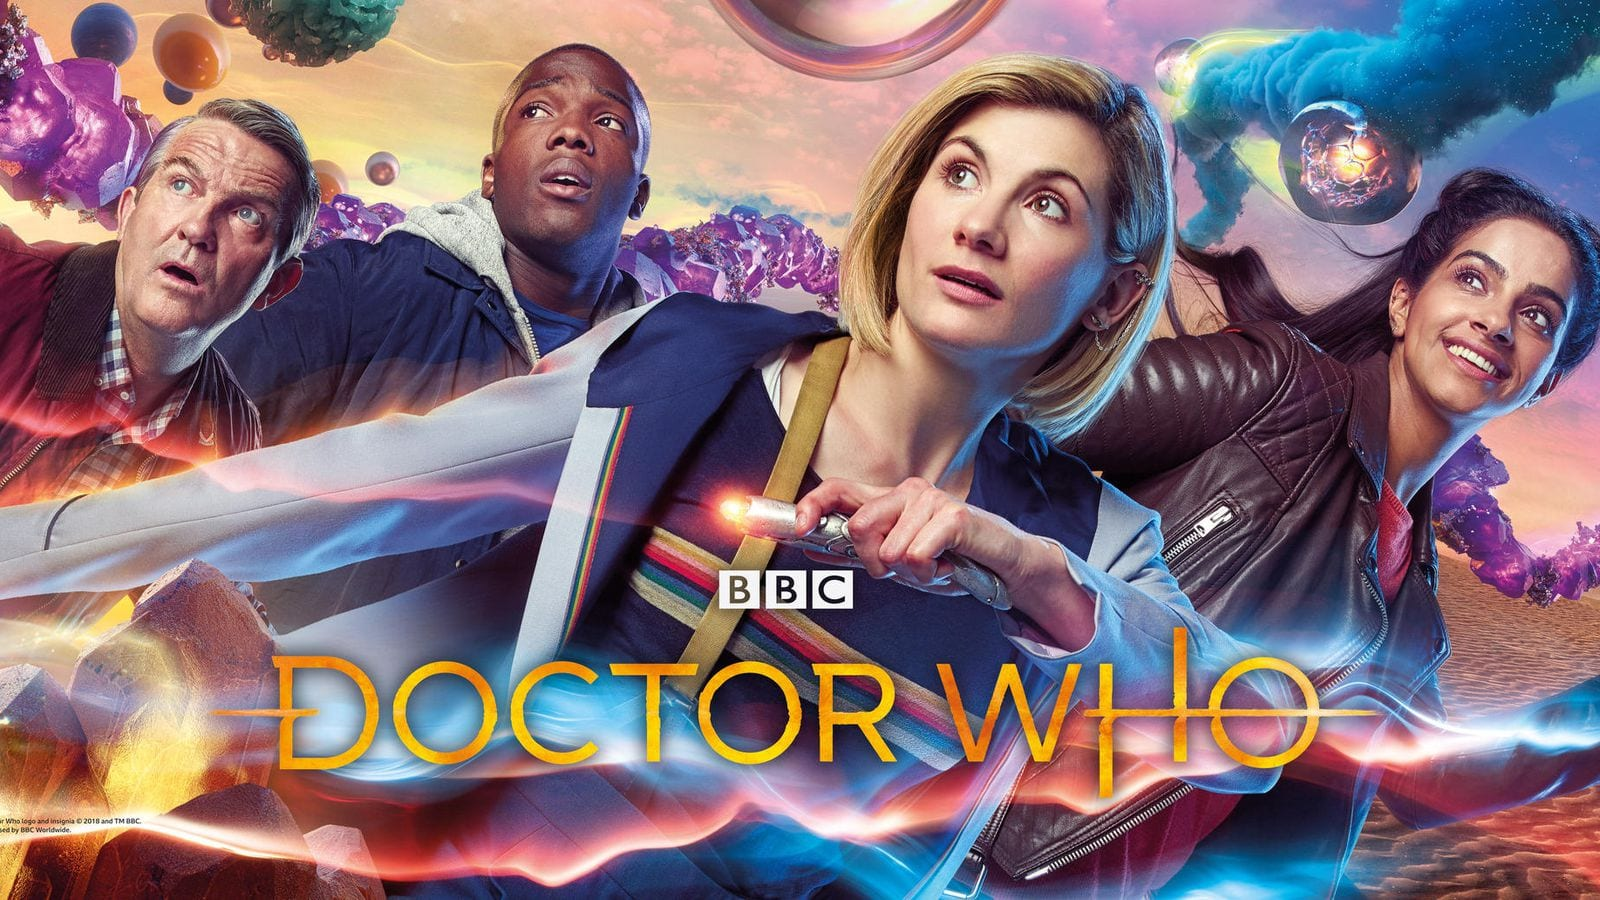 Review: Doctor Who Series 11 Episode 1 - The Woman Who Fell